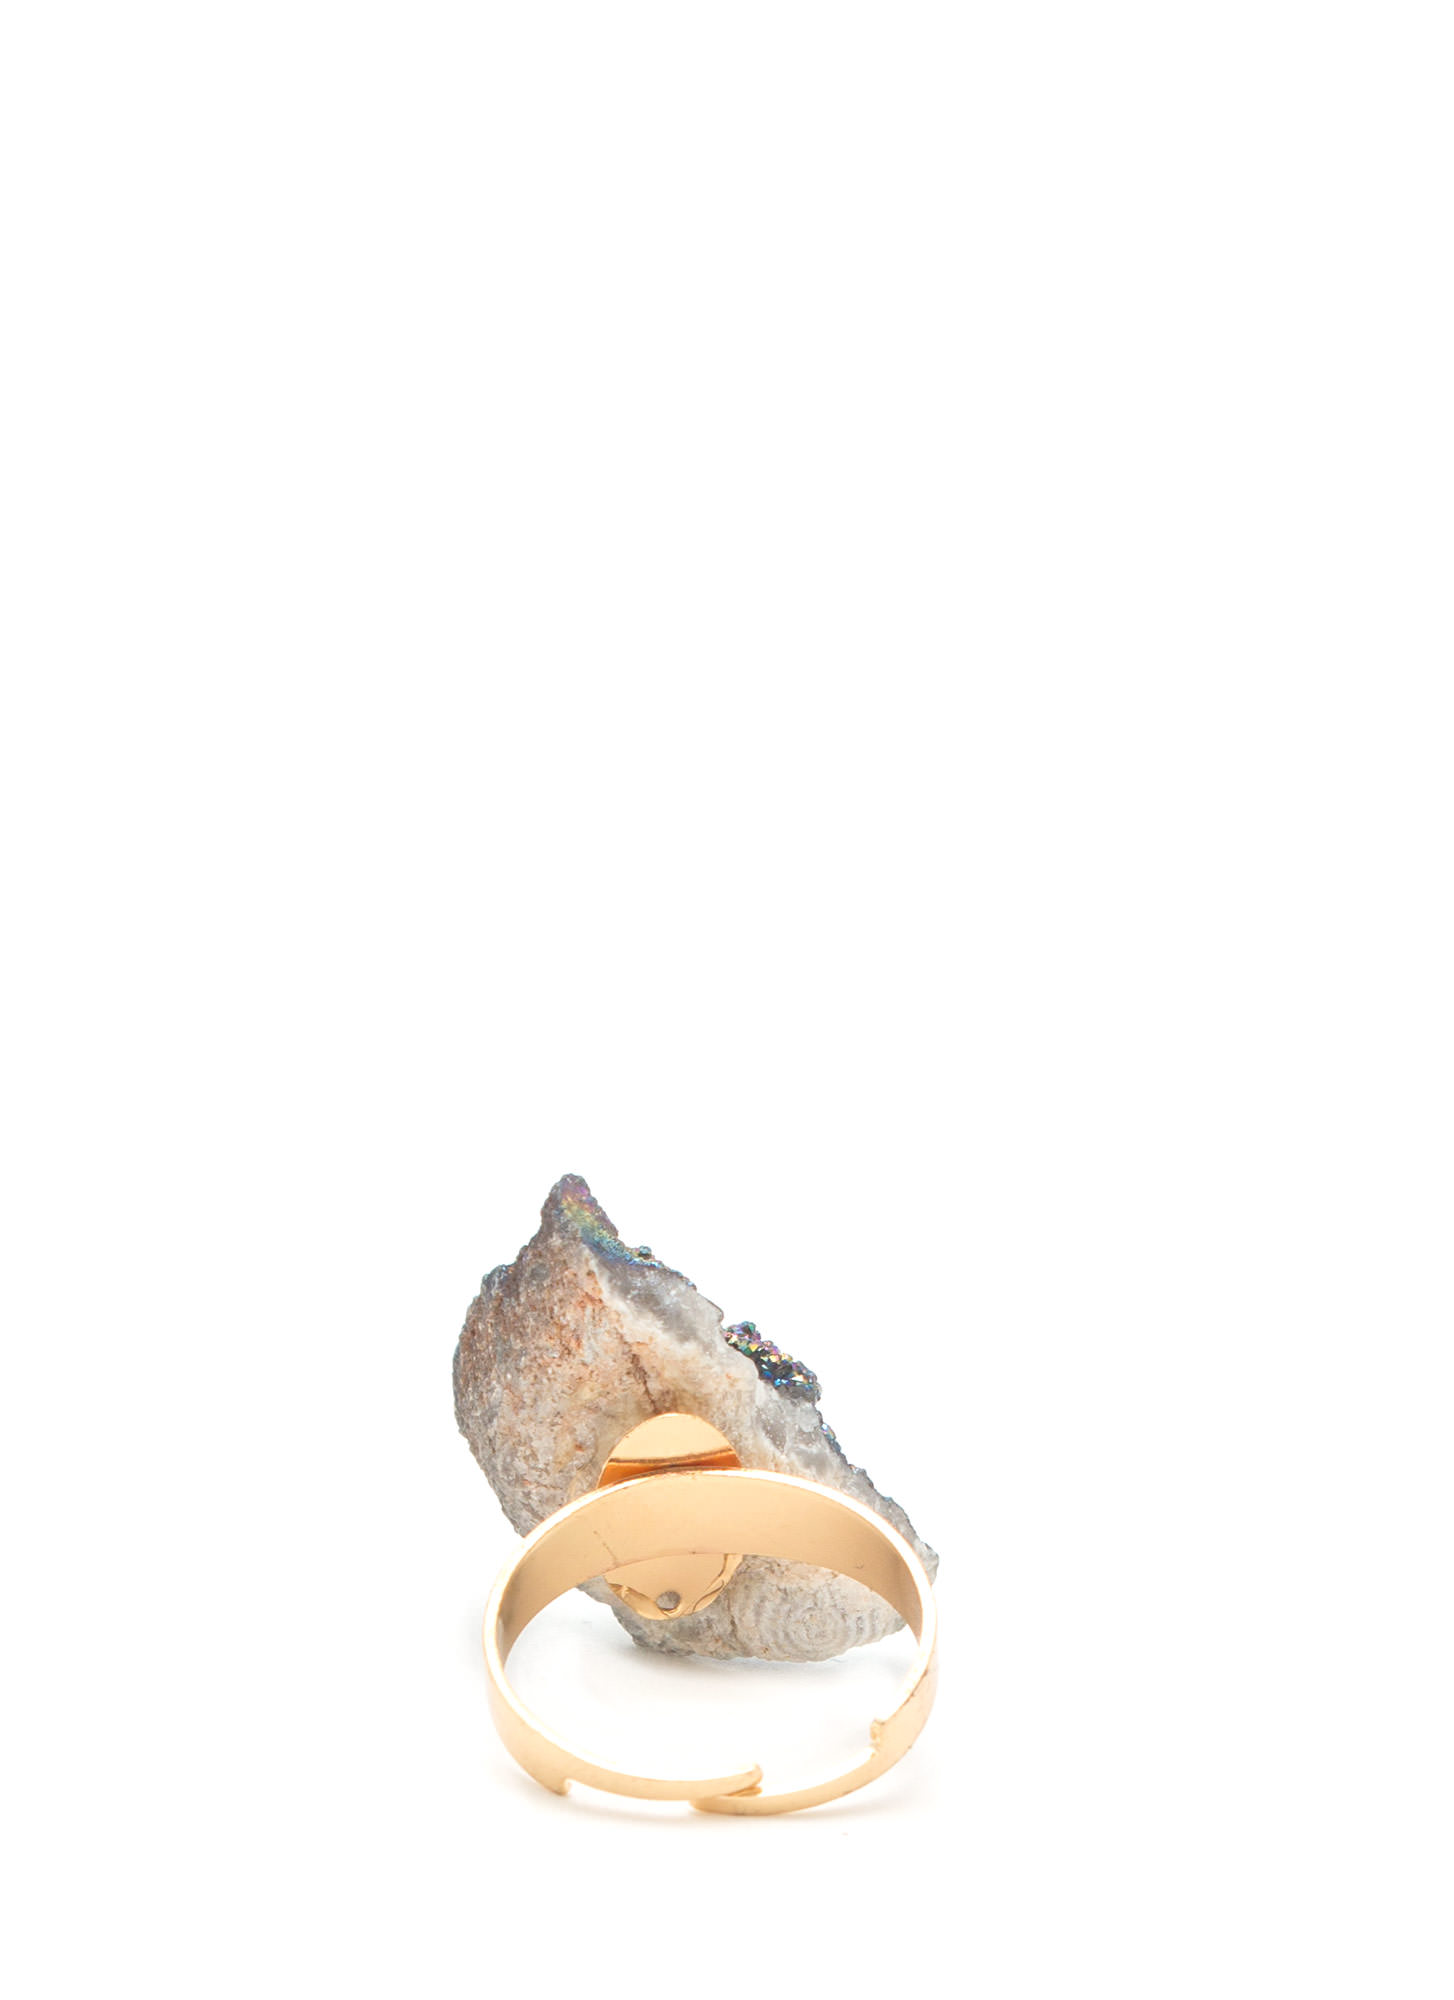 Mined Stone Ring PEWTERMULTI